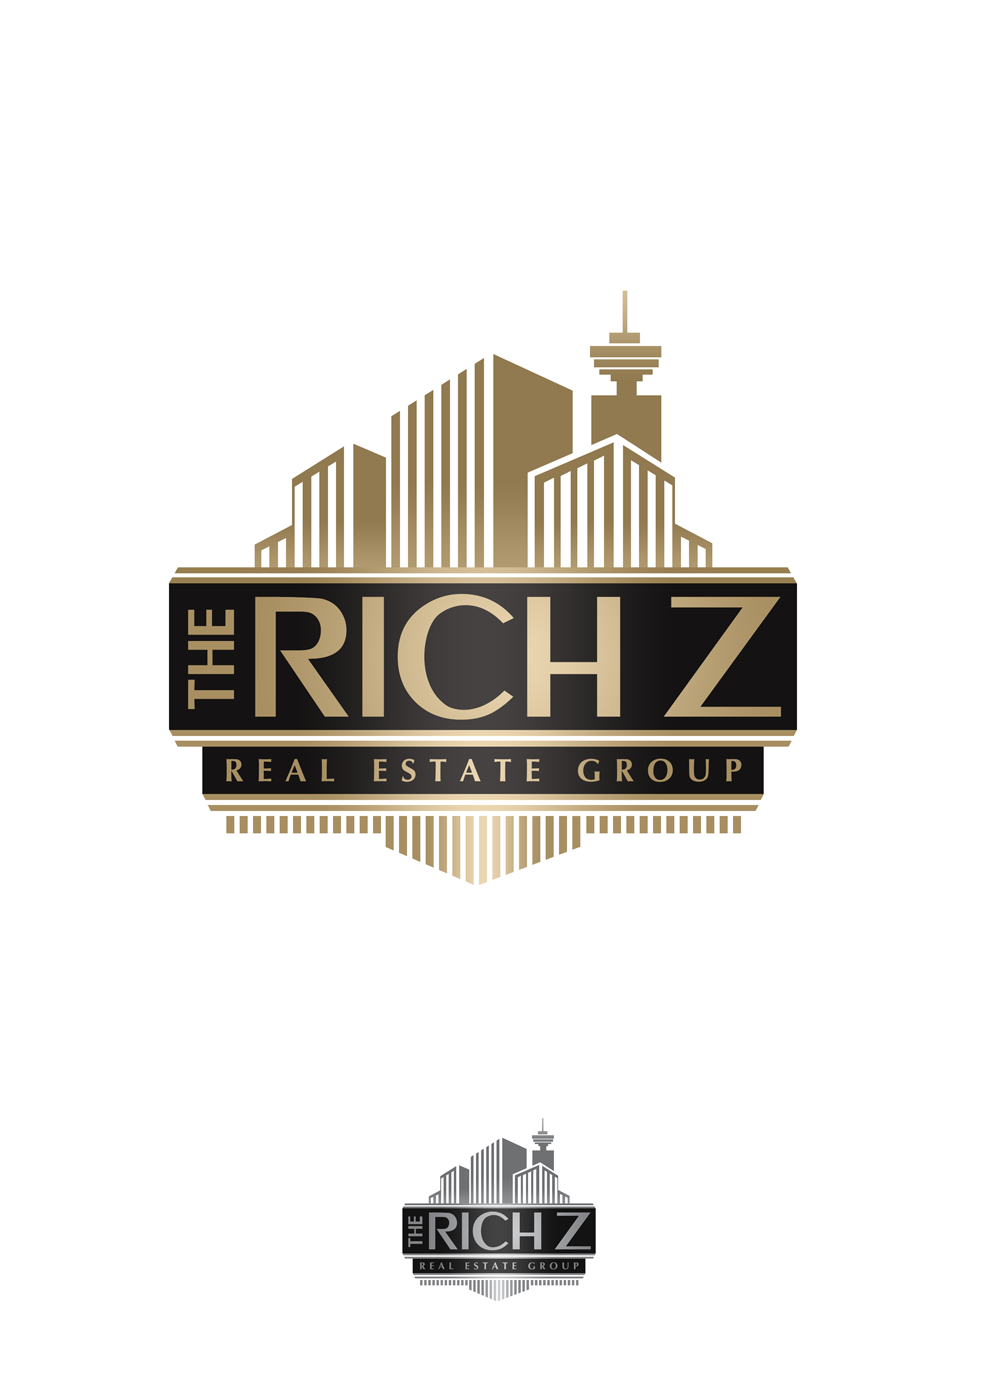 Logo Design by Private User - Entry No. 357 in the Logo Design Contest The Rich Z. Real Estate Group Logo Design.